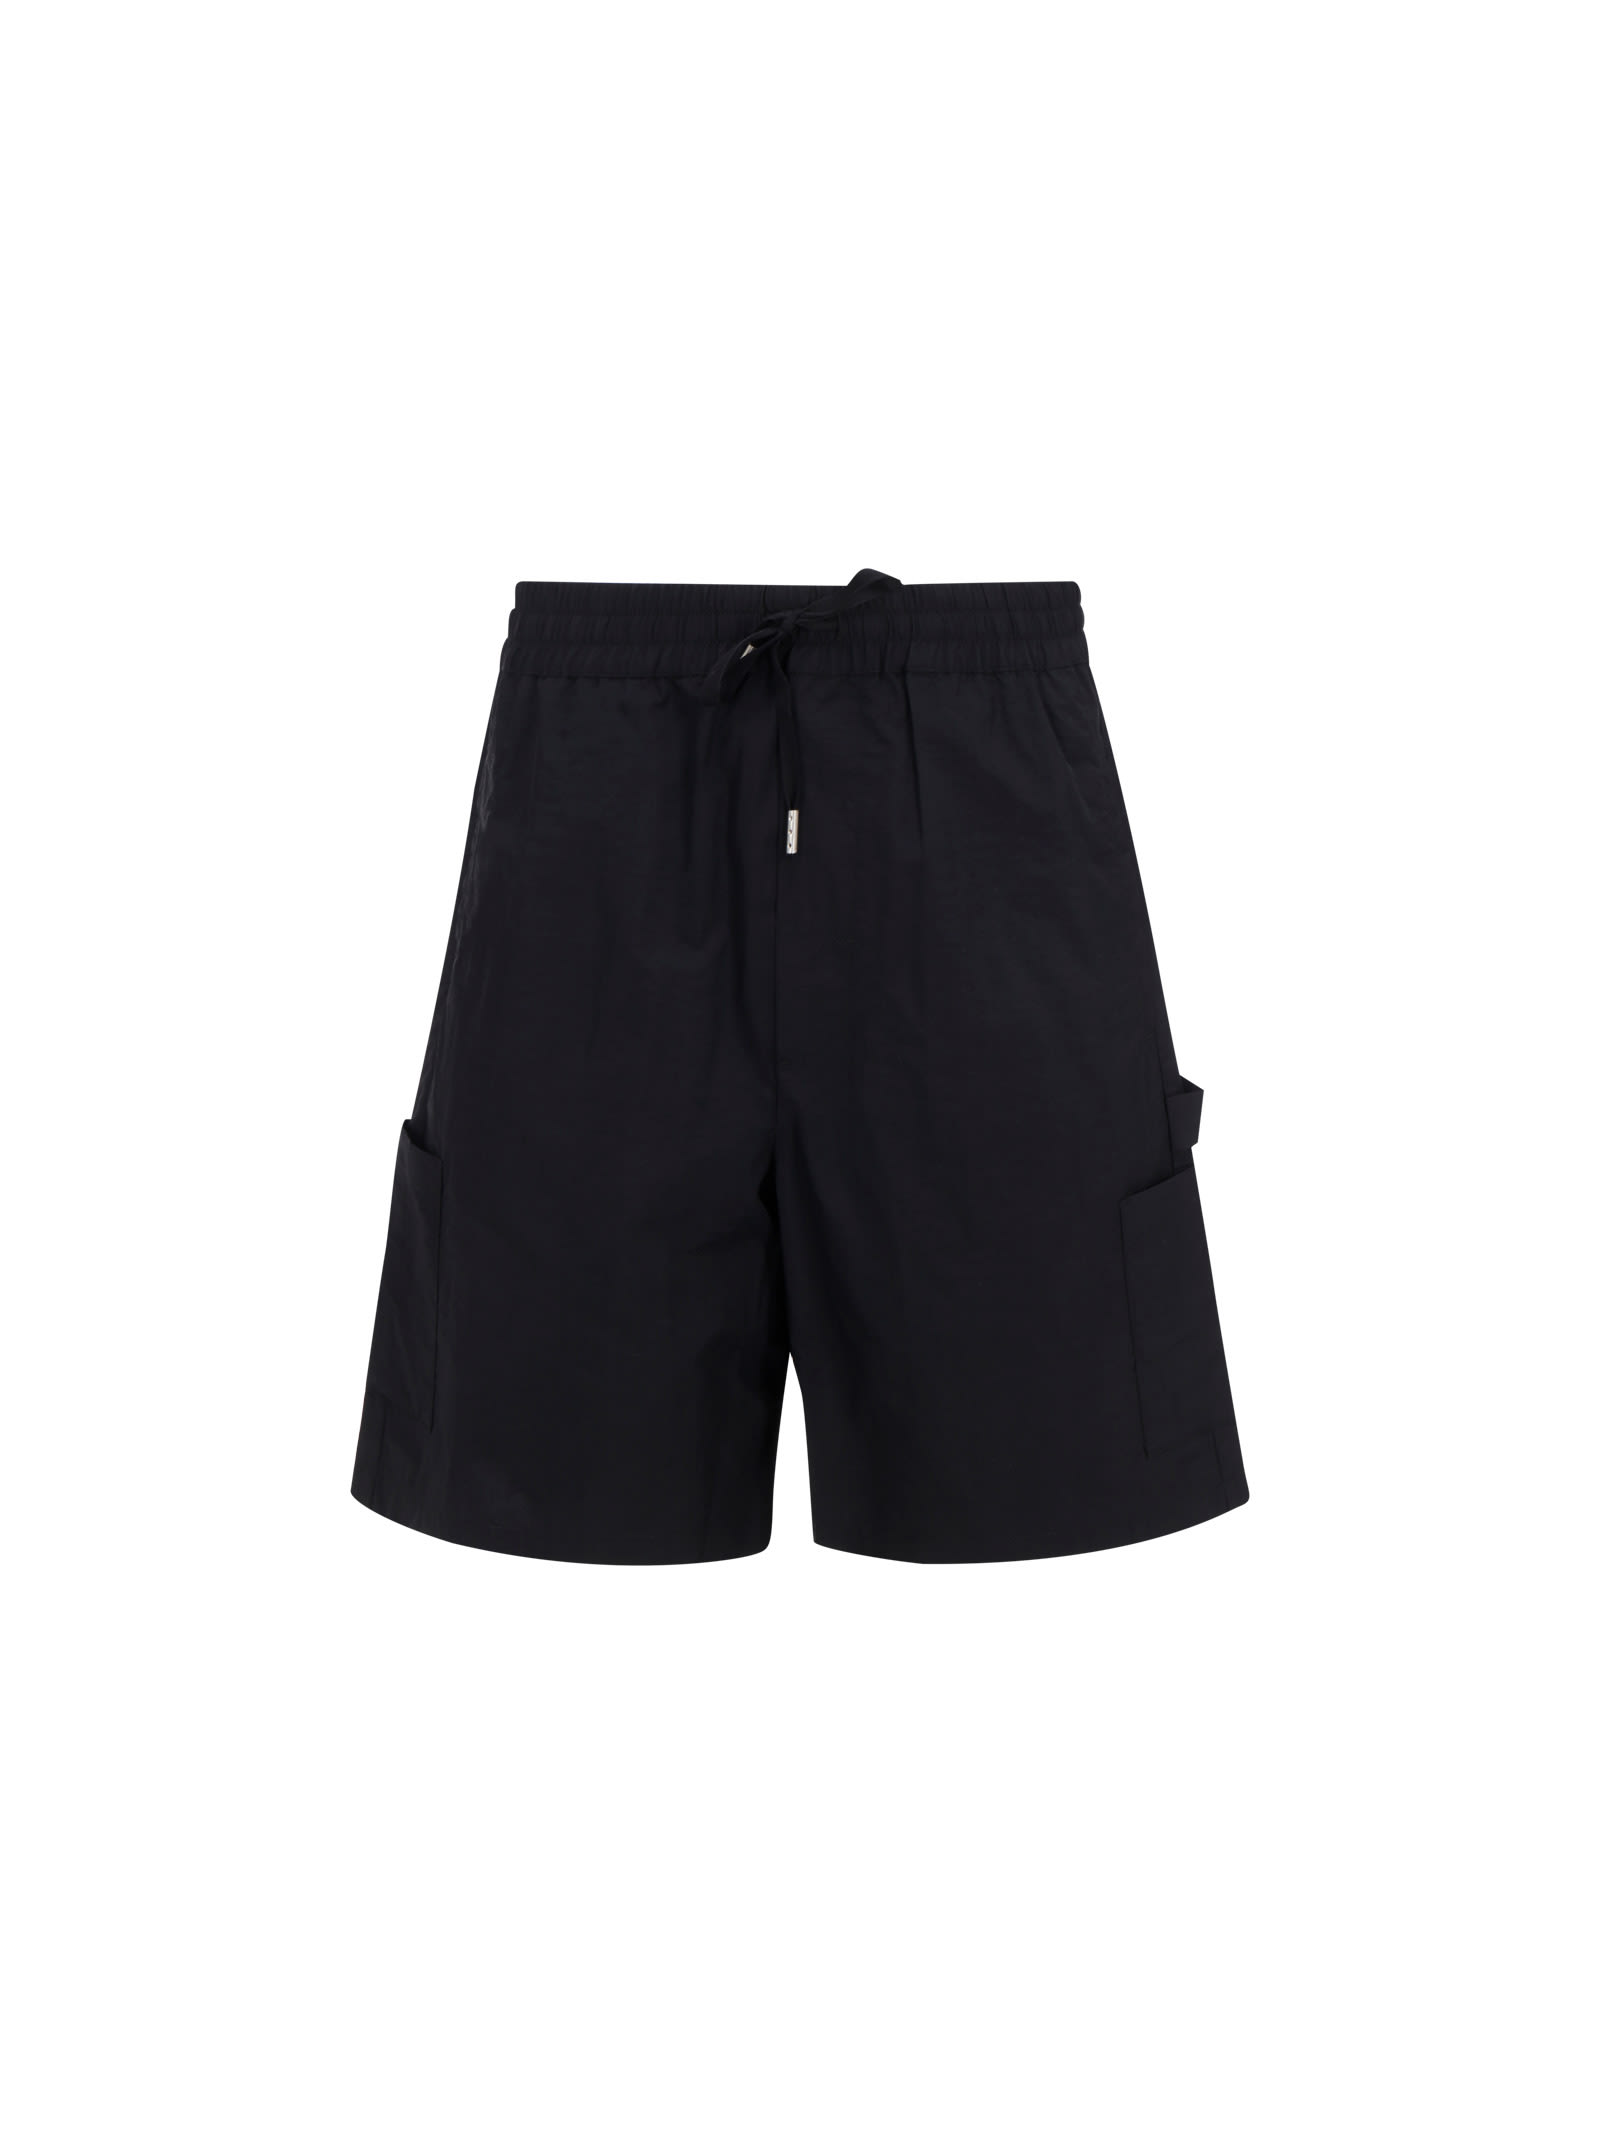 Heron Preston BERMUDA SHORTS